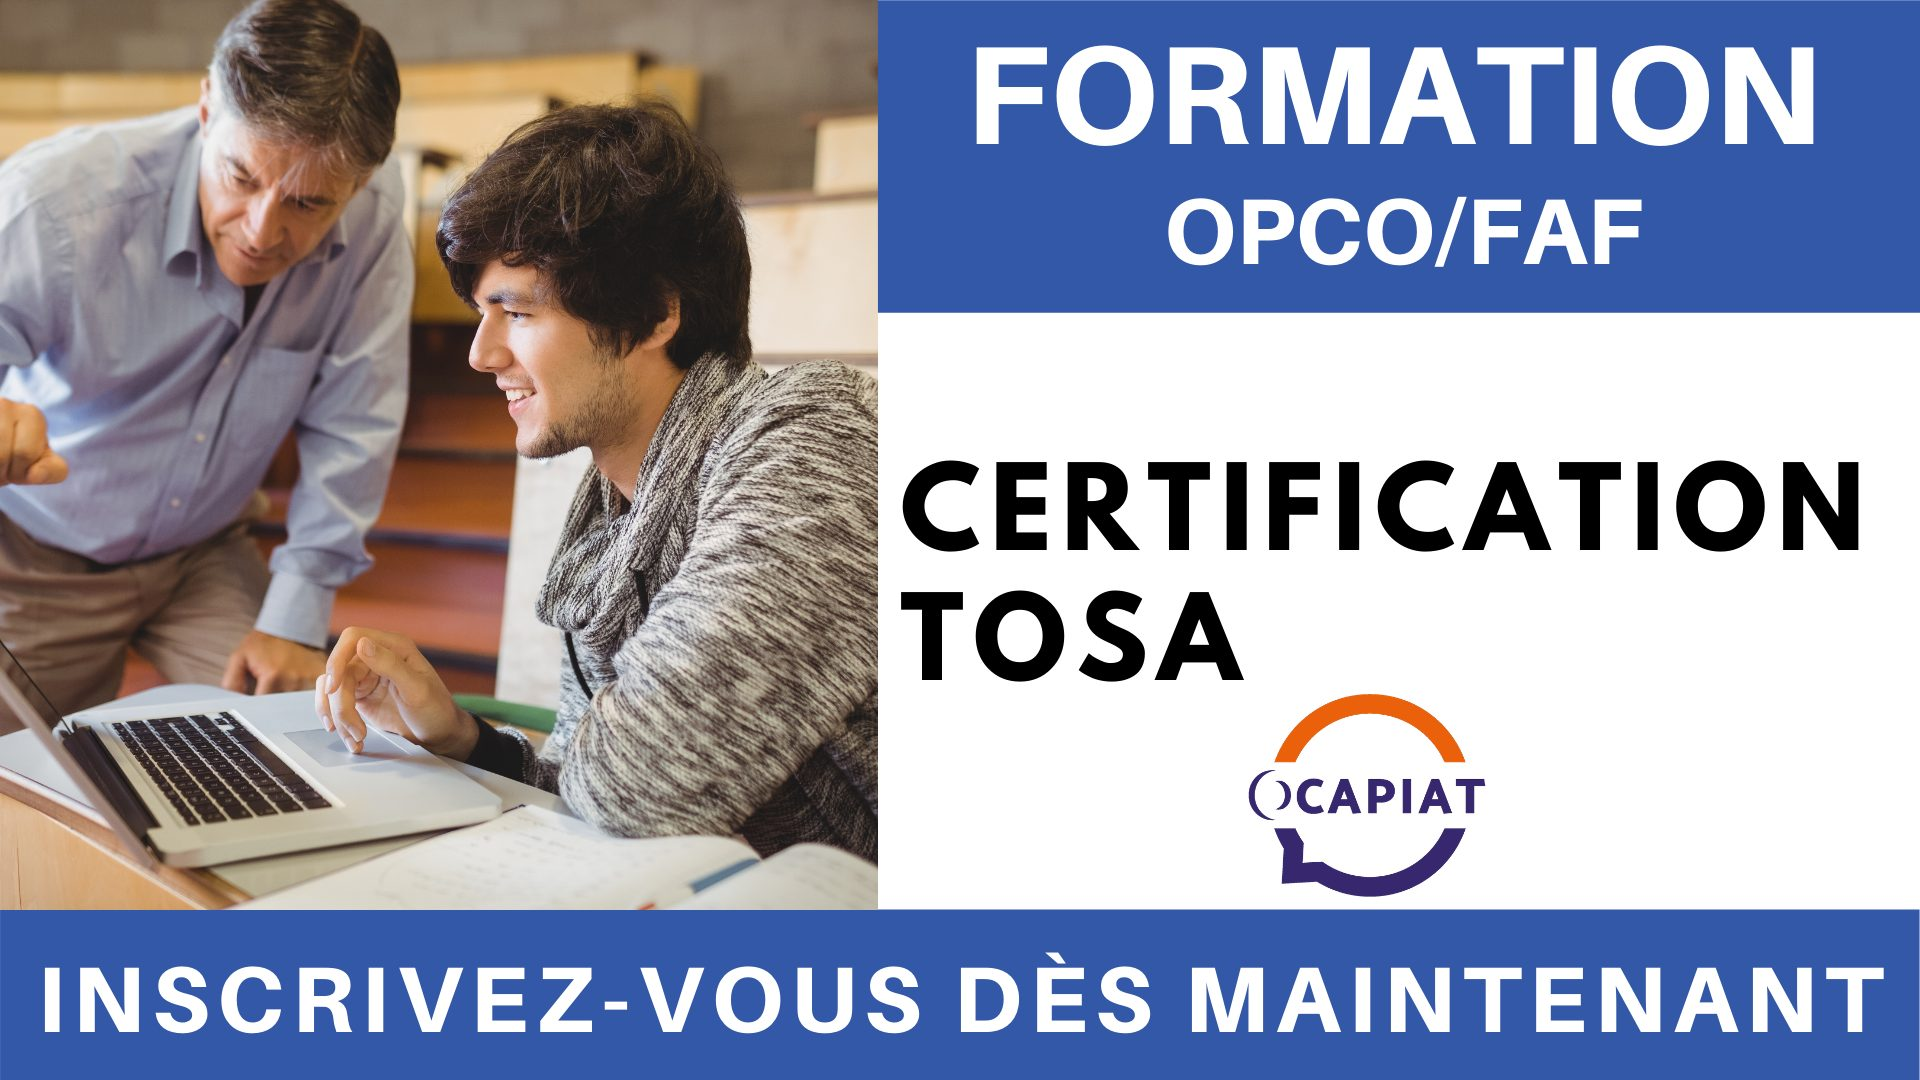 Formation OPCO FAF - Certification TOSA